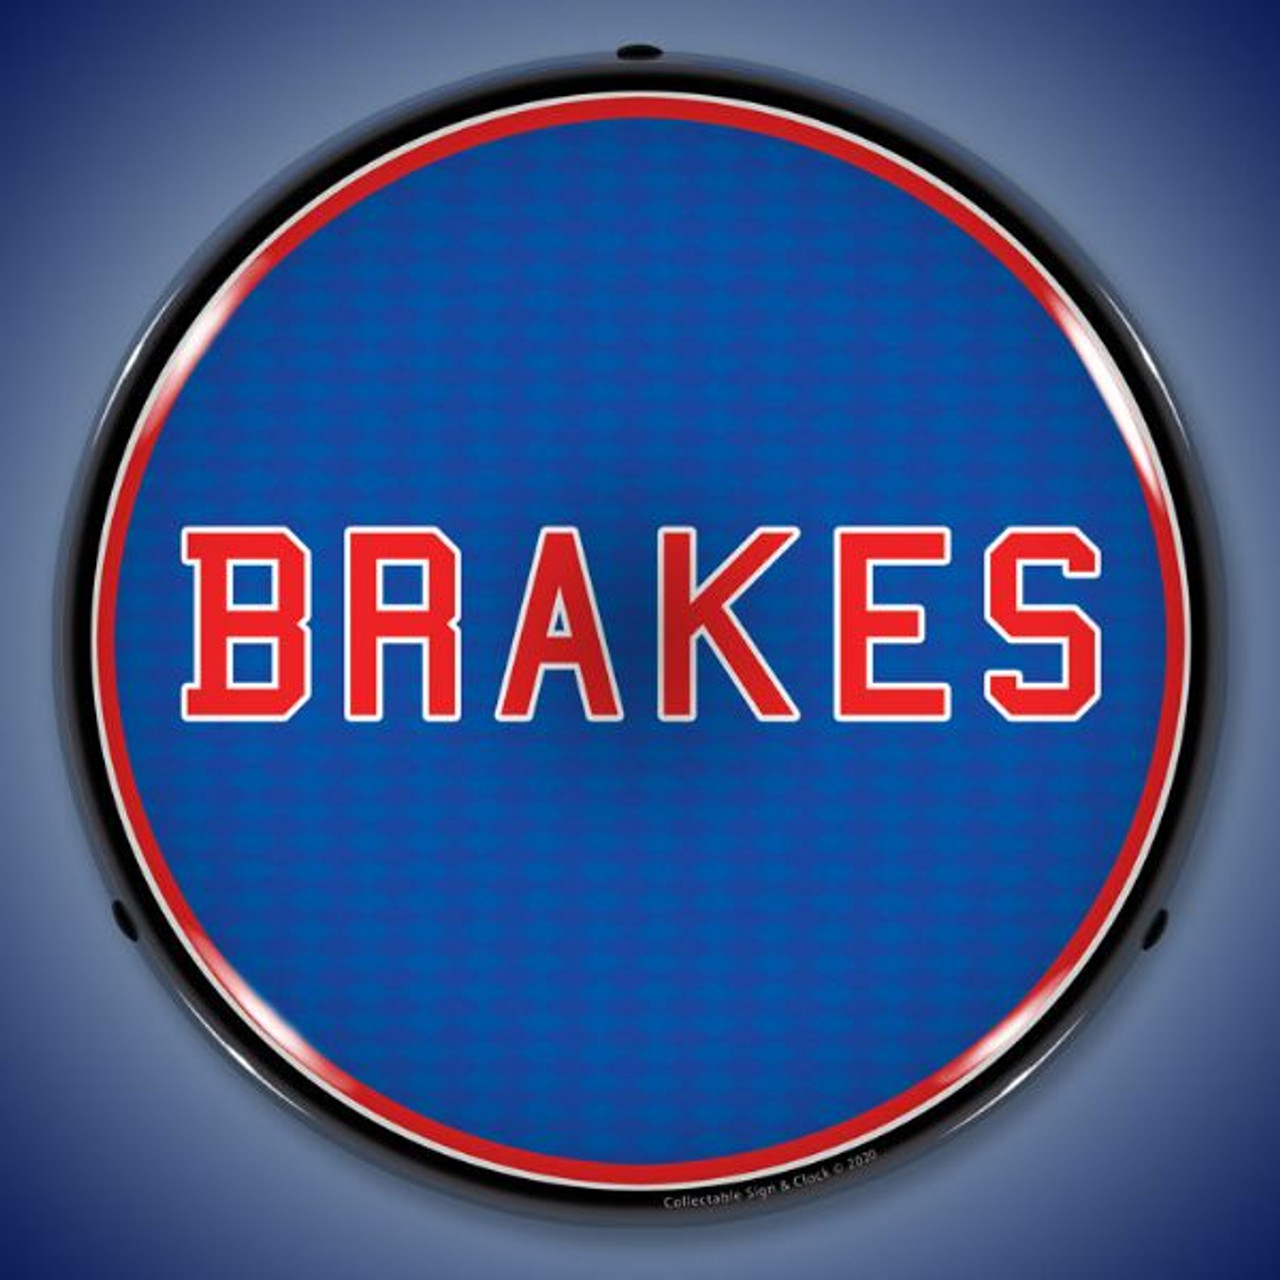 Brakes LED Lighted Business Sign 14 x 14 Inches